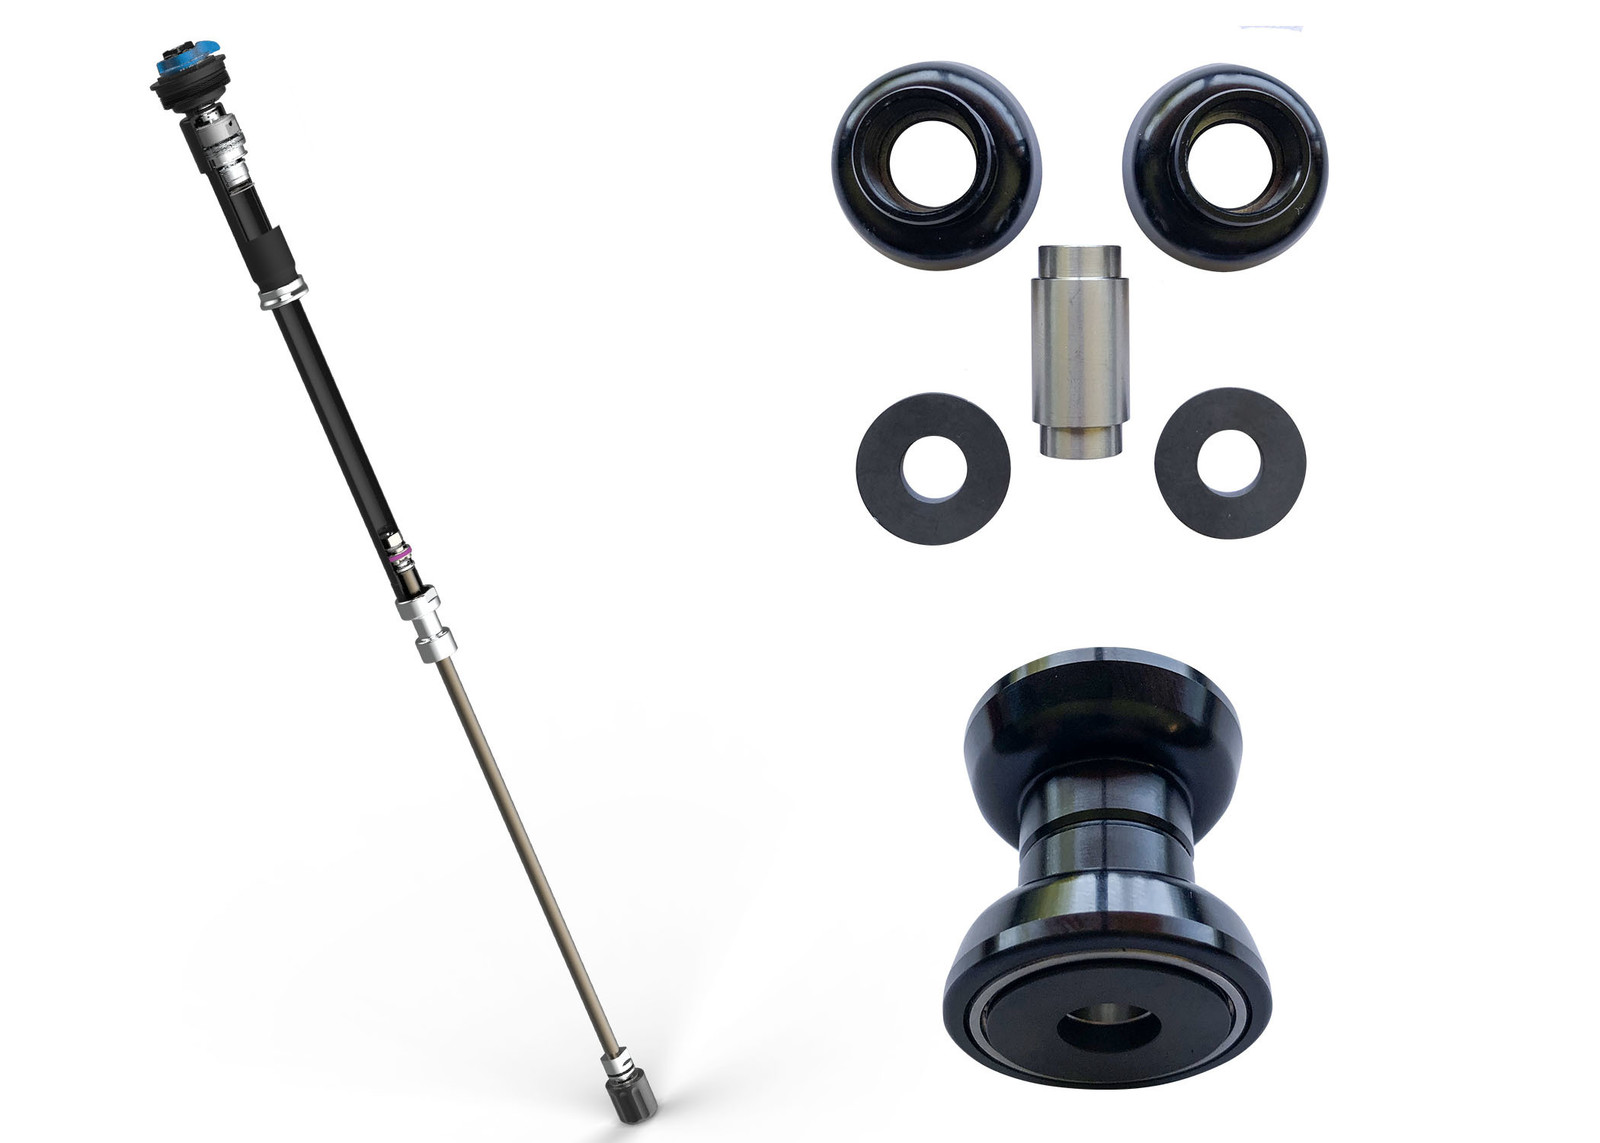 FOX Releases Updated FIT4 Damper and New Bearing Shock Hardware